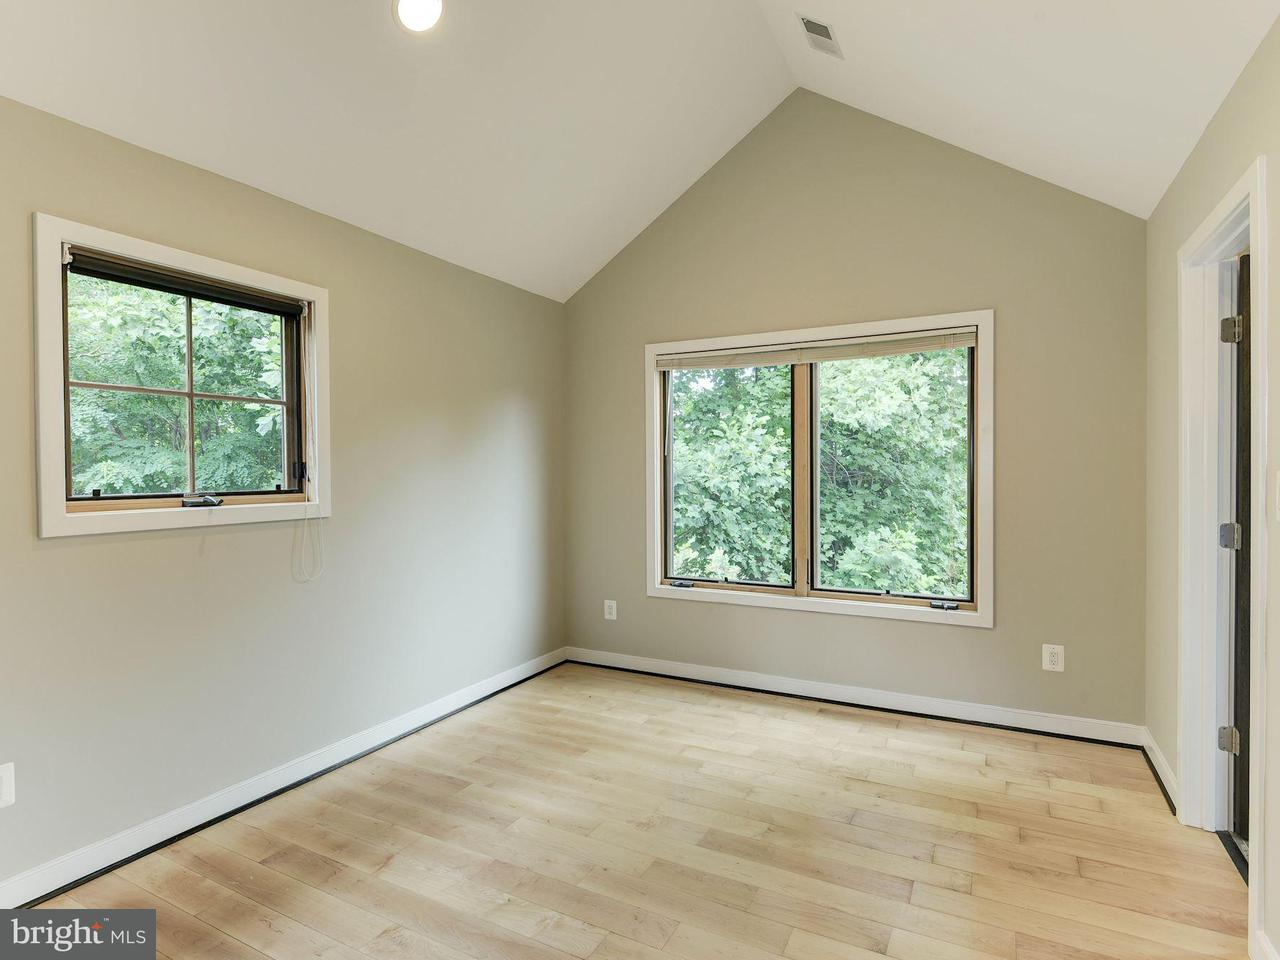 Additional photo for property listing at 314 Lee Street 314 Lee Street Falls Church, Virginia 22046 Estados Unidos